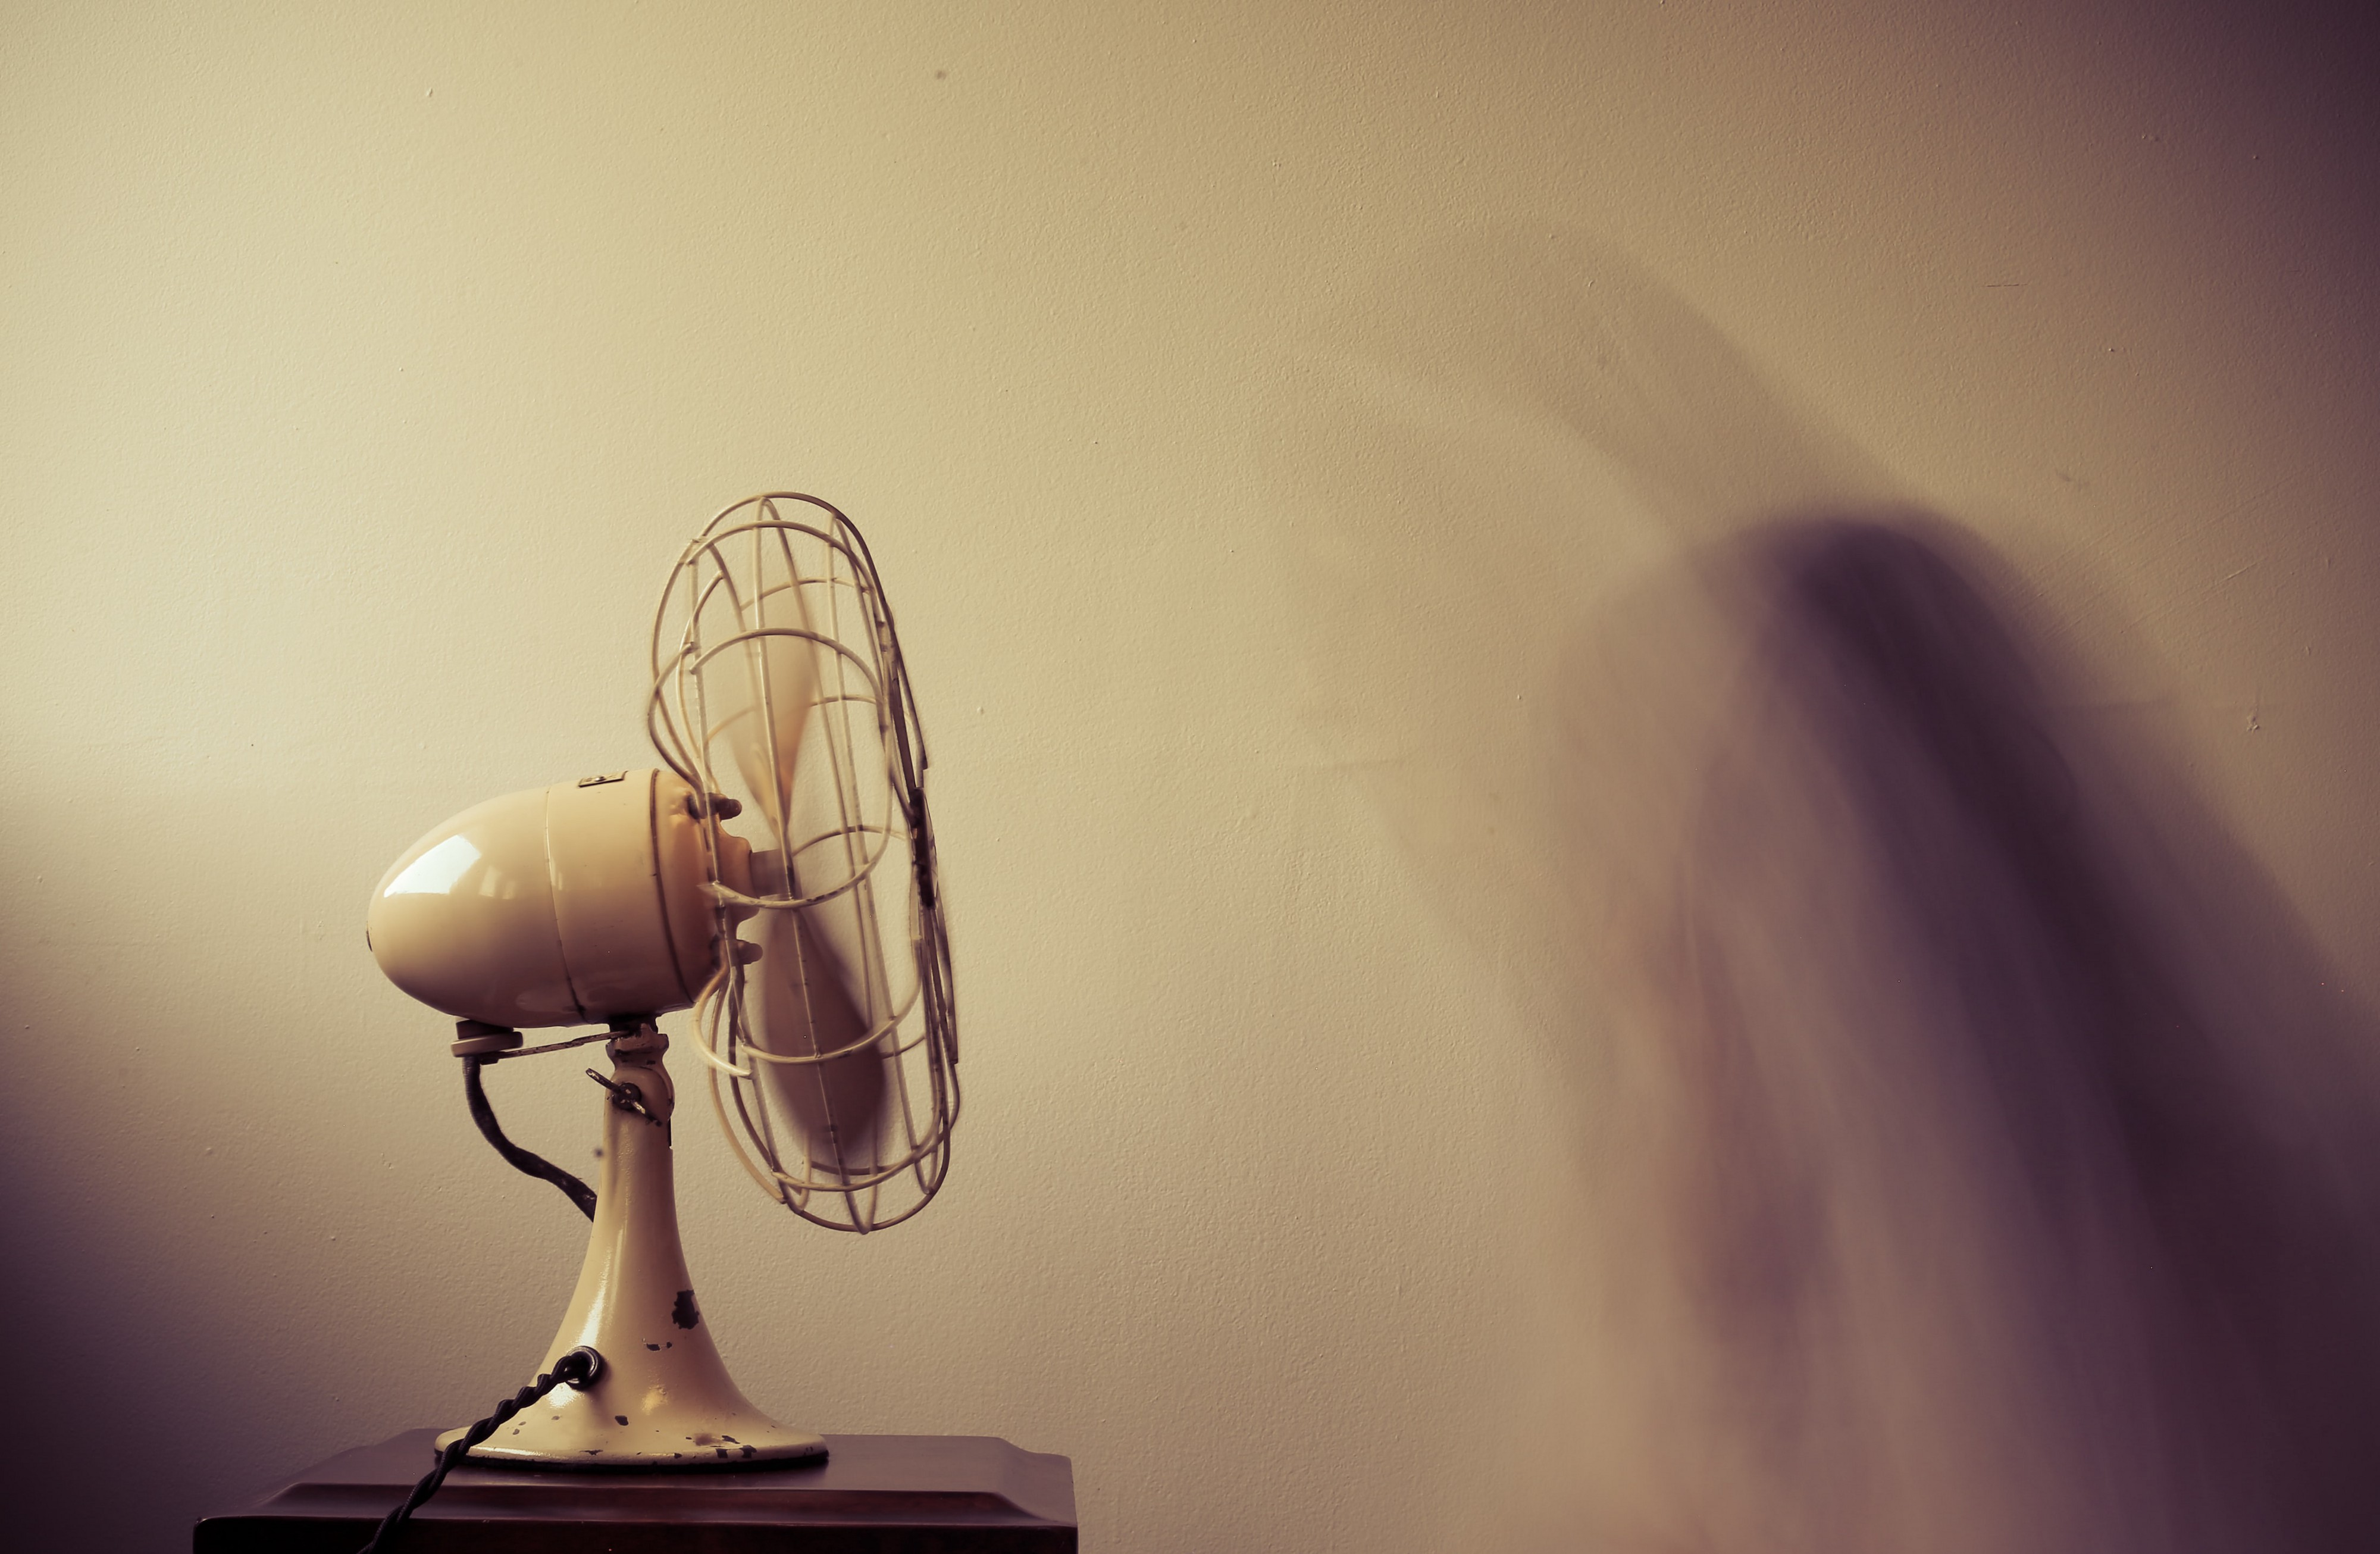 Fan blowing with a blurred image of a person.